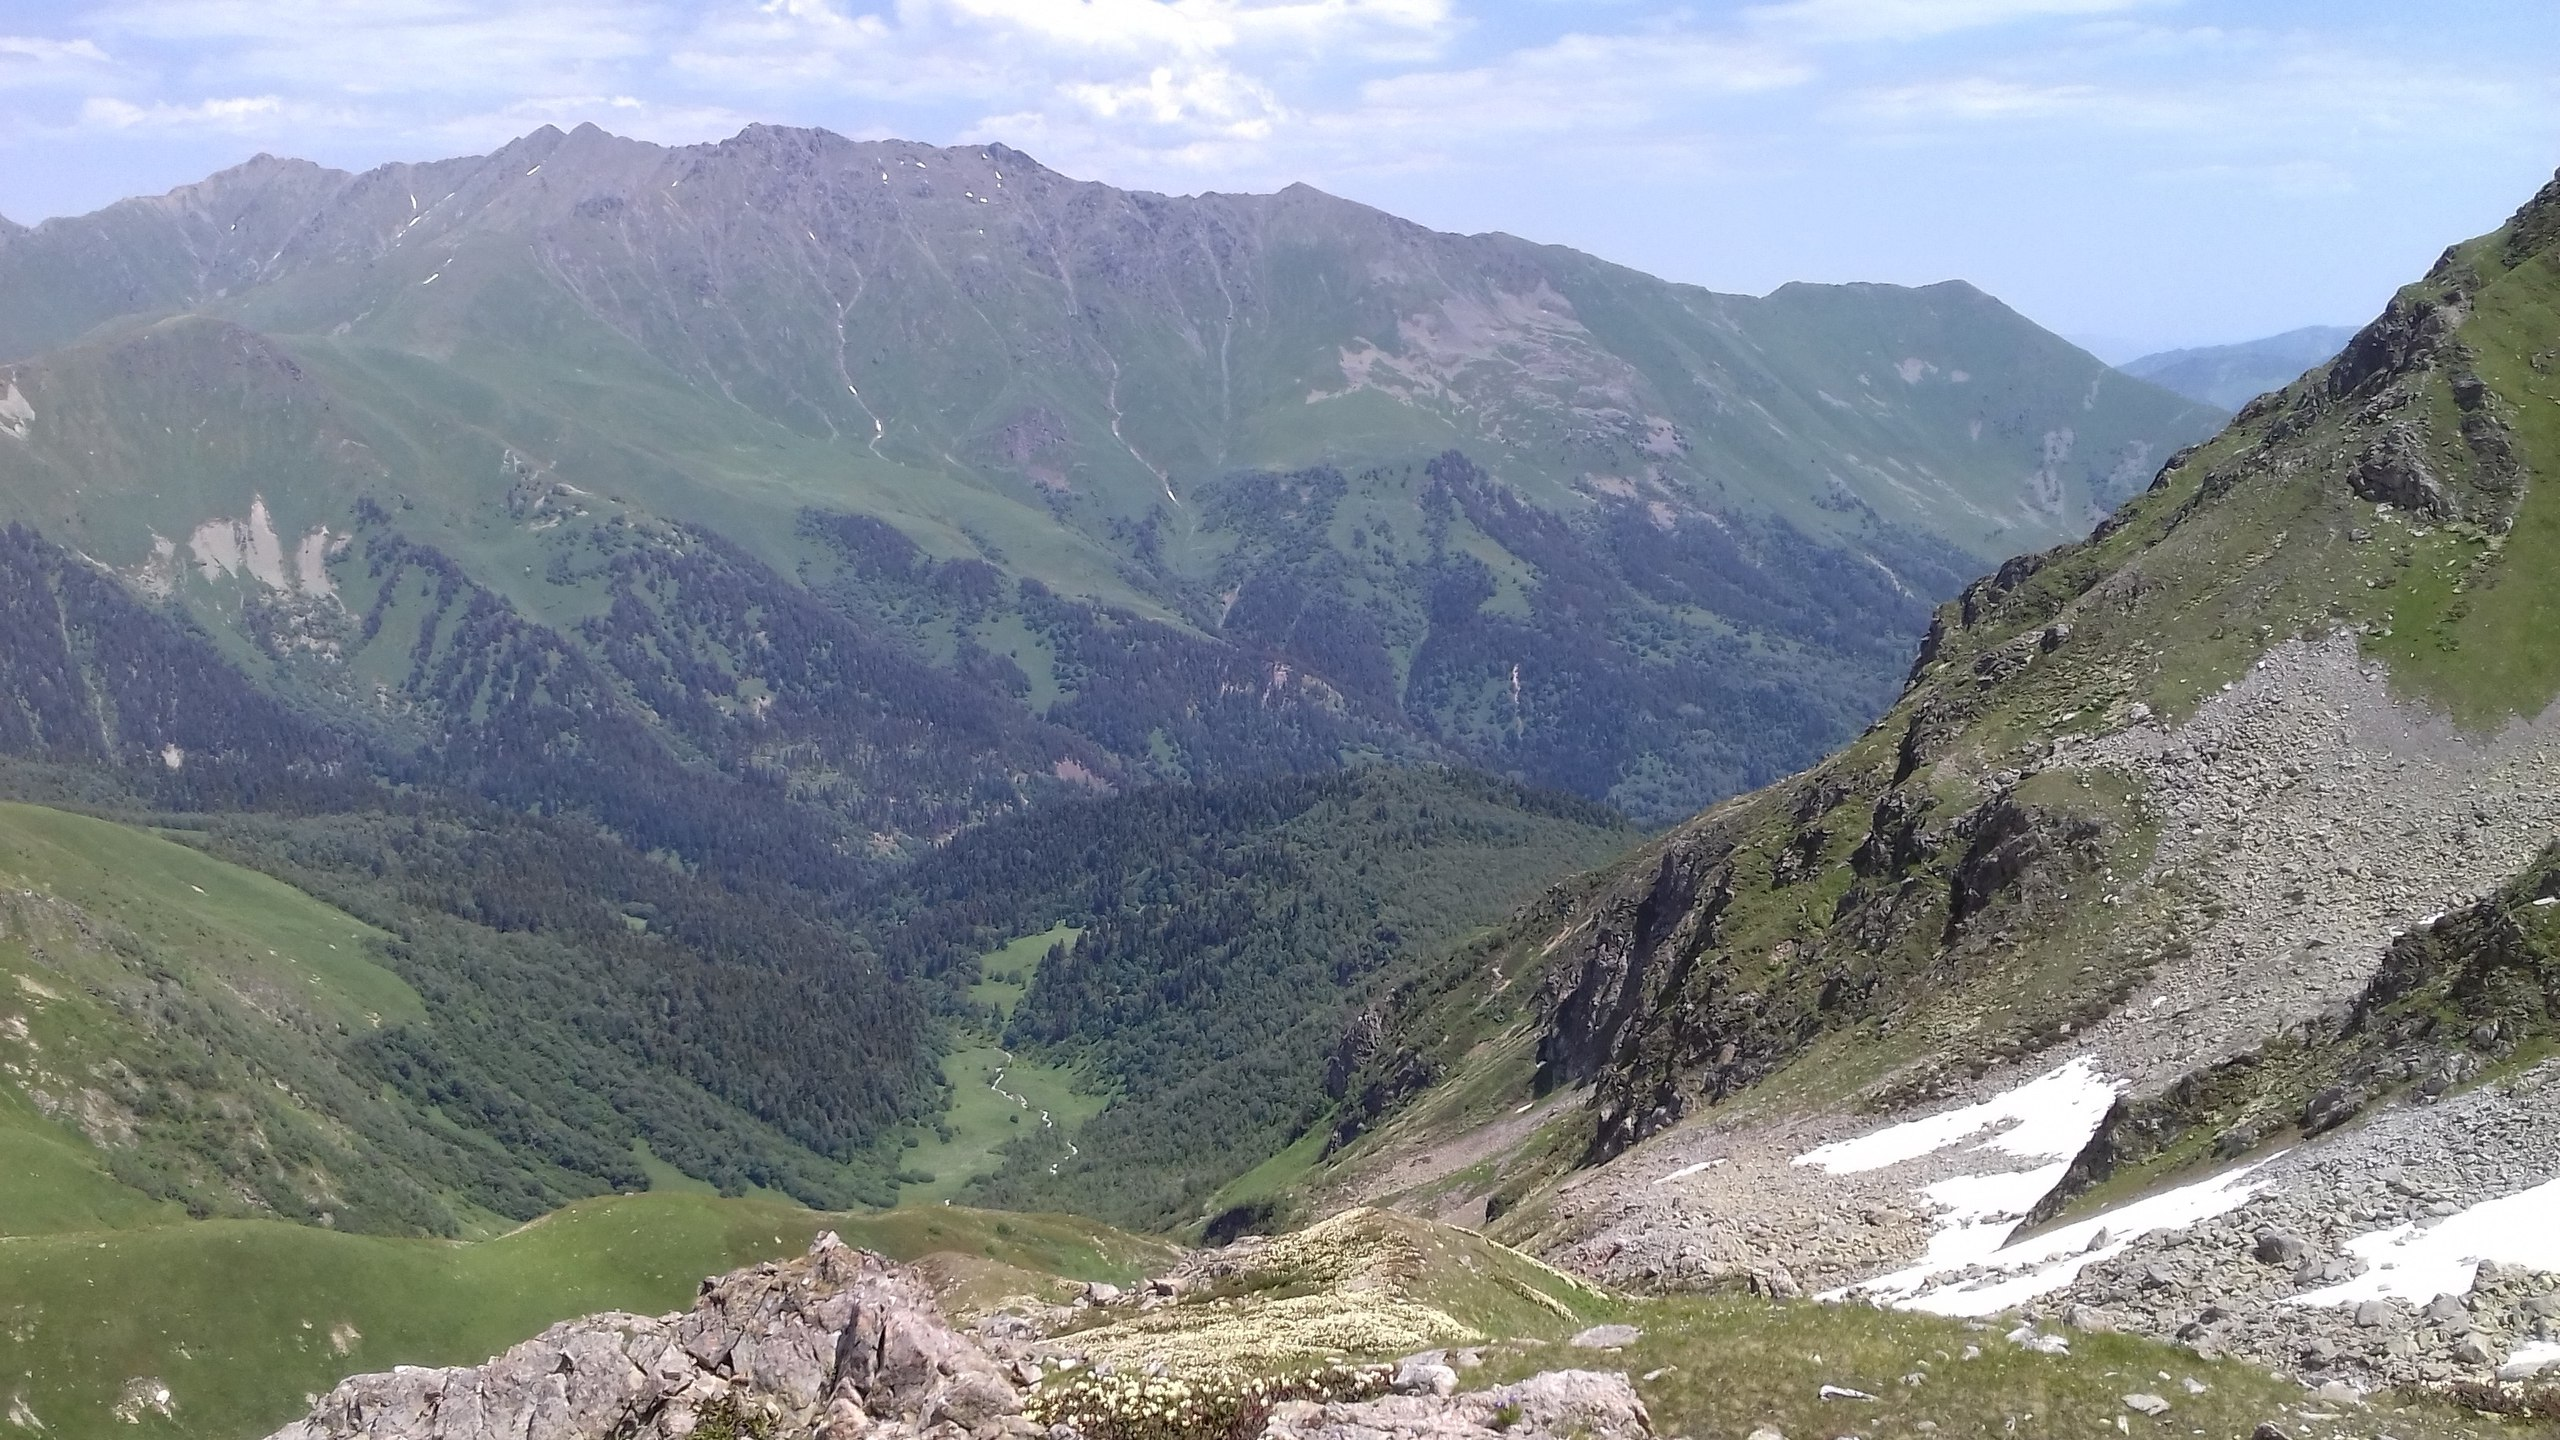 MegaTransCaucasus 2017: through the mountains to the sea. Part 3. To the top of Damhurts! Lake, Zakan, mountains, Damhurts, only, for the first time, fast, lakes, sun, Lake, sides, life, then, almost, Here, by the way, we met, upwards, several